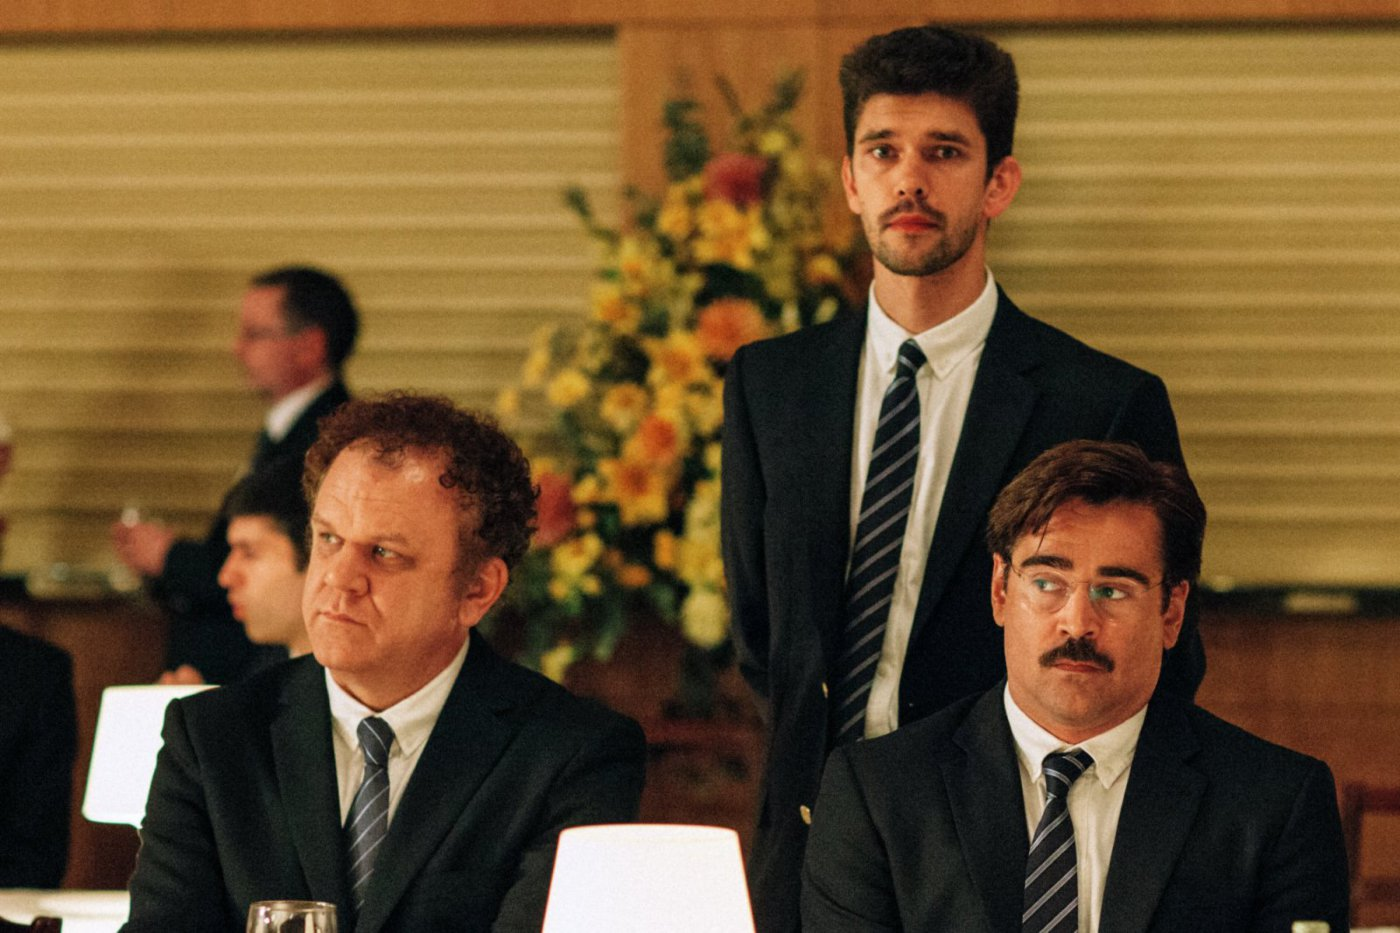 Scena iz filma Jastog (The Lobster).